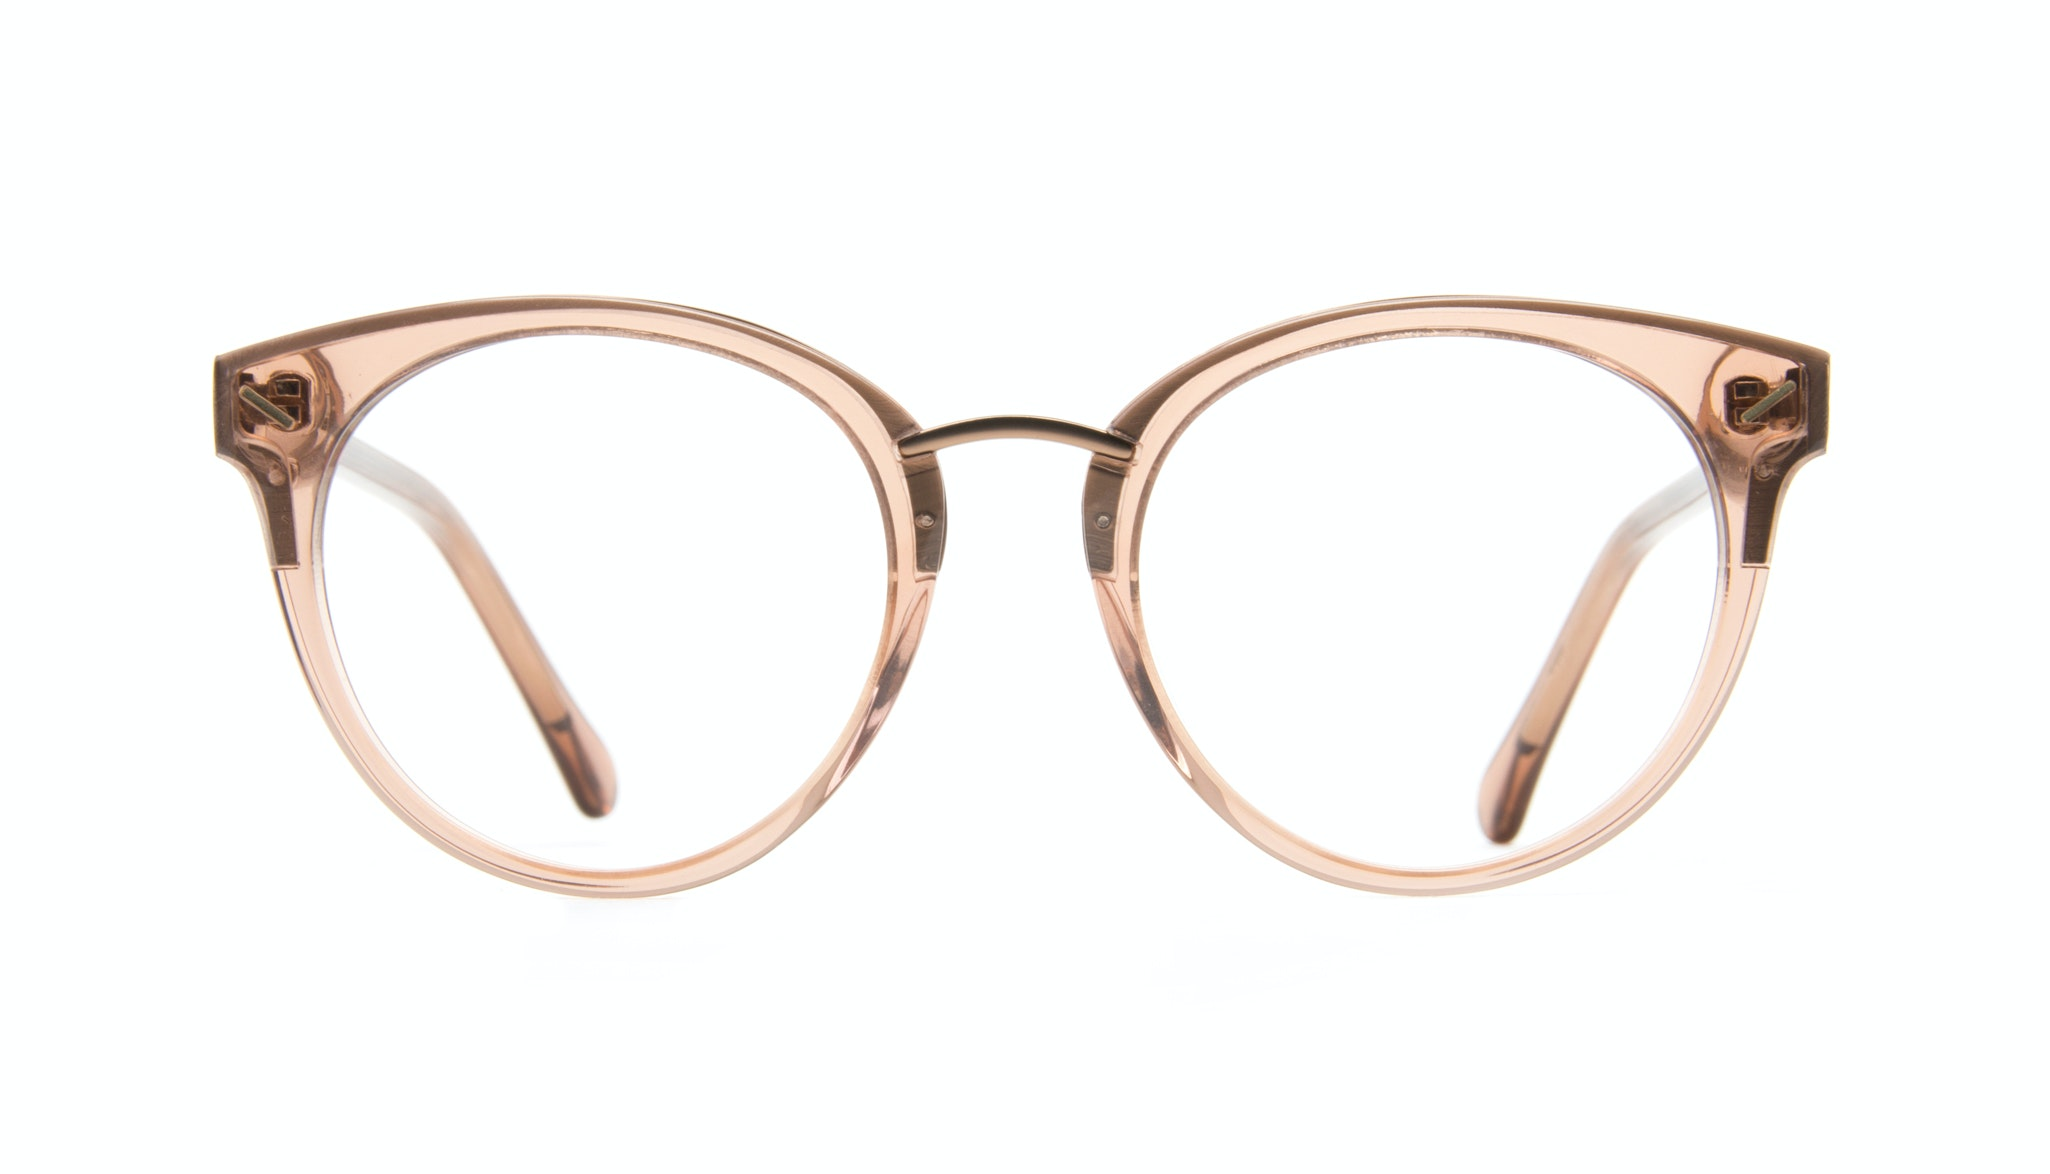 Affordable Fashion Glasses Round Eyeglasses Women Element Rose